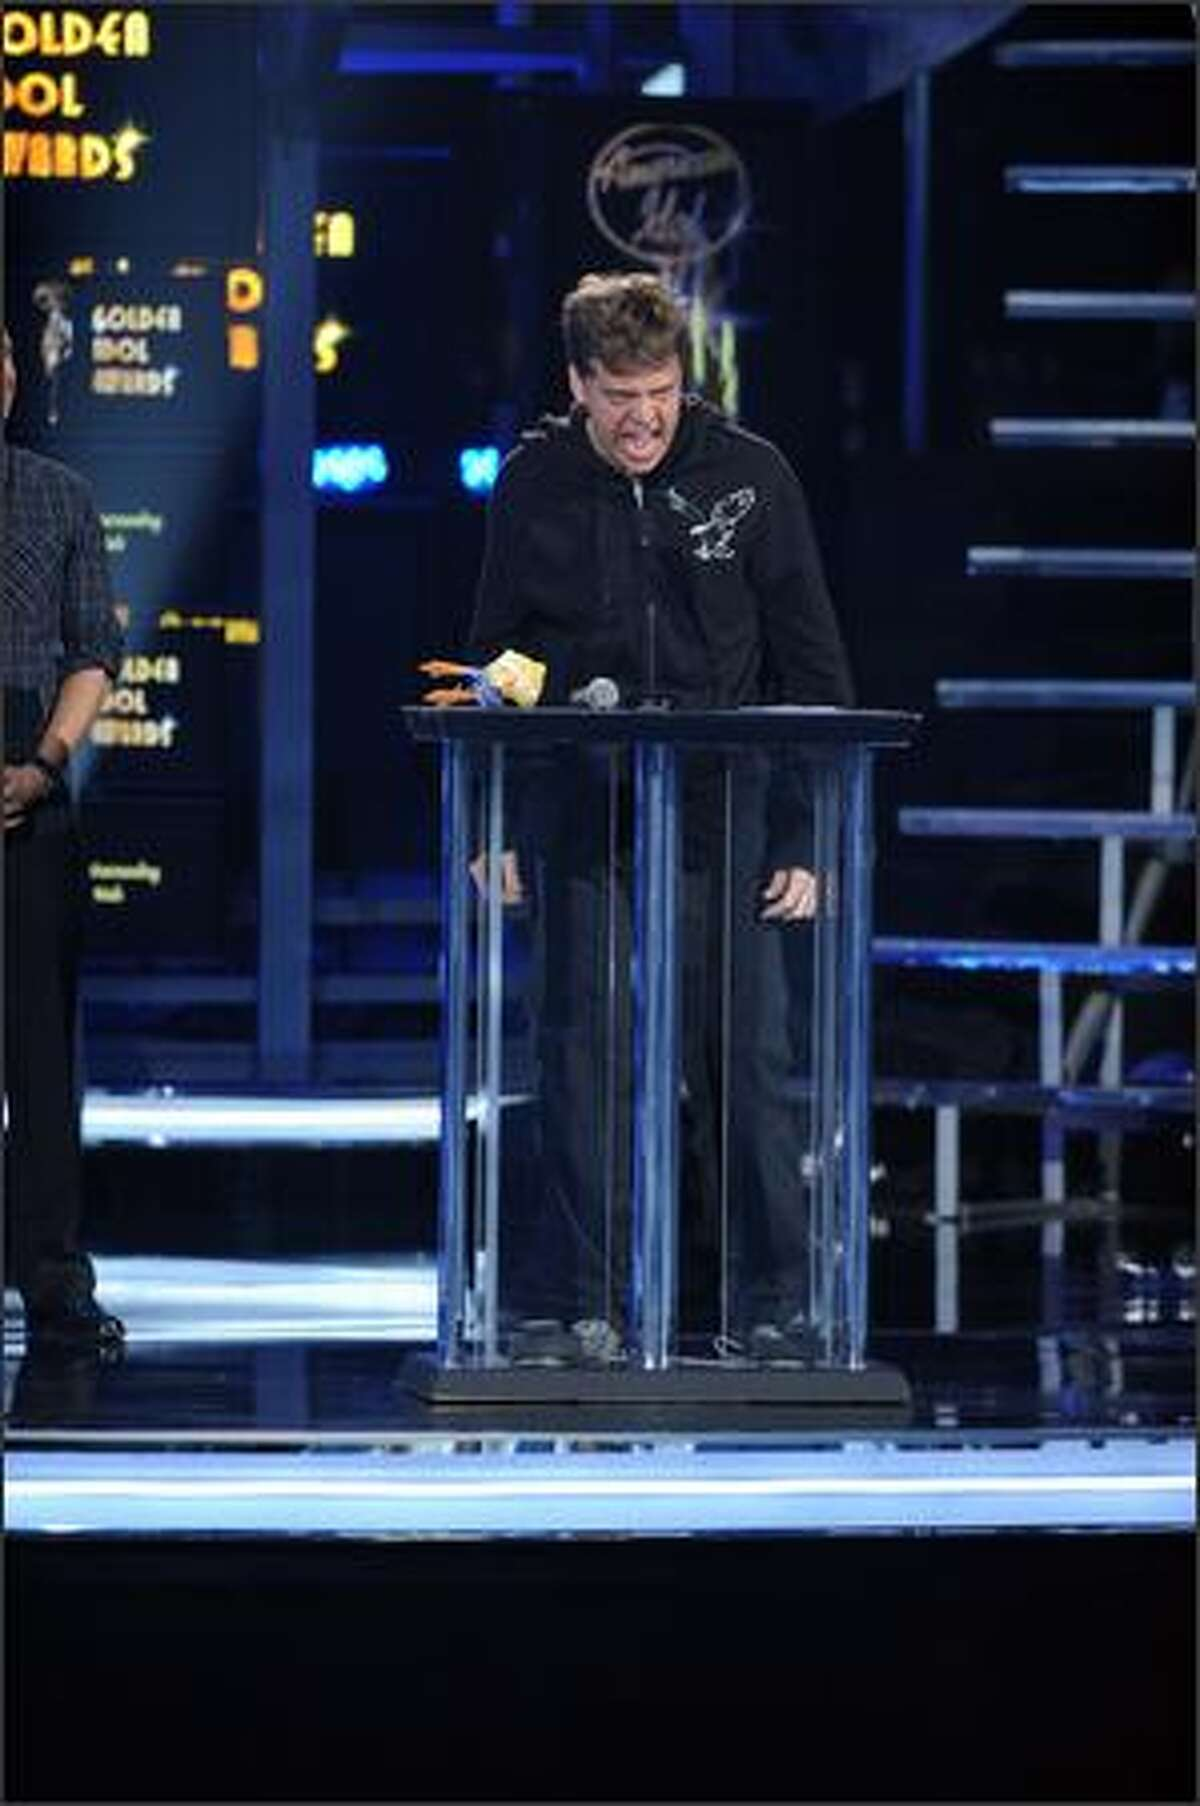 Nick Mitchell is awarded the Golden American Idol Award for best outstanding male performance.